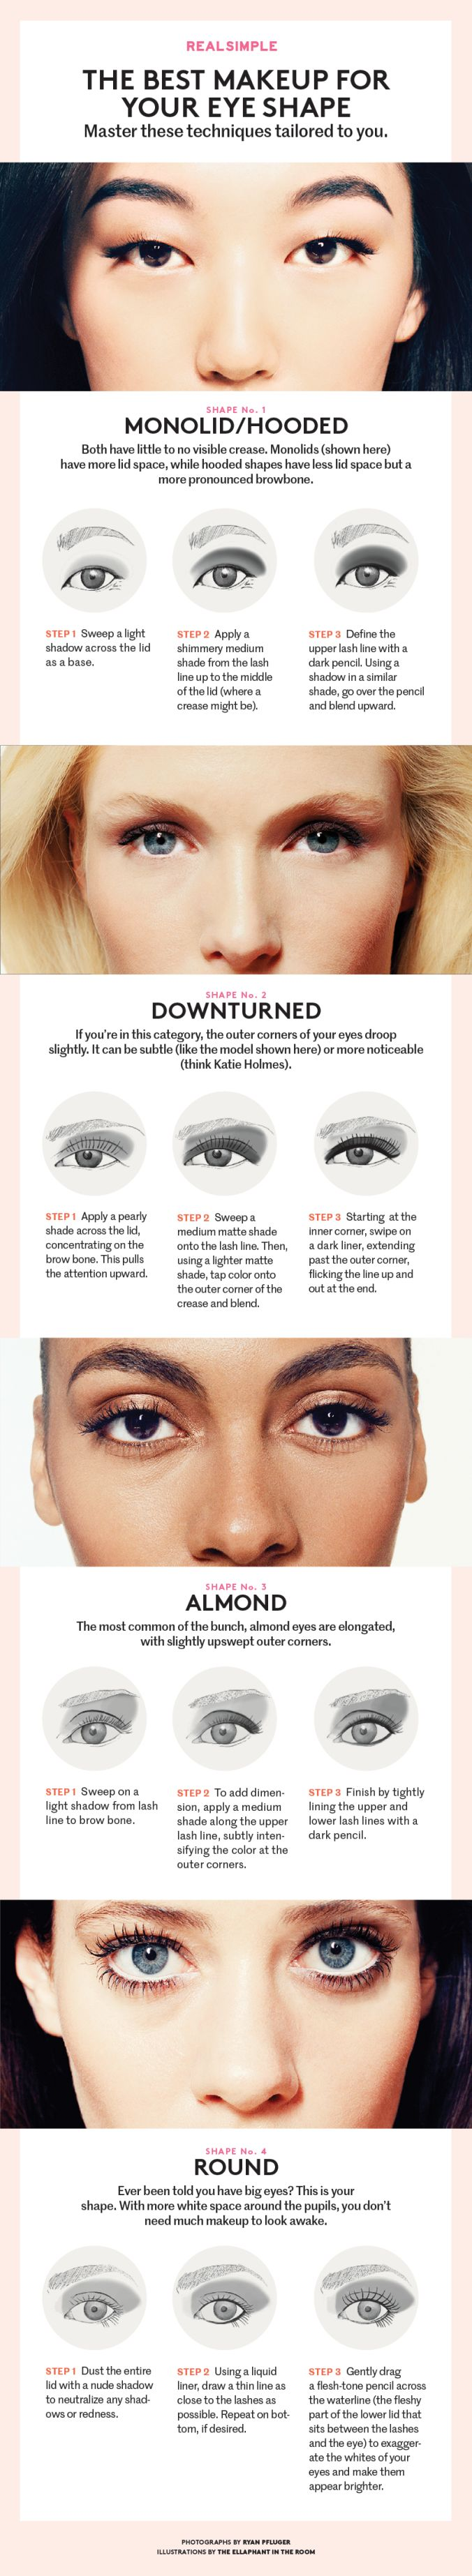 The Best Makeup for your Eye Shape Great to know , now i definitely know that I have been waring eyeshadow wrong.